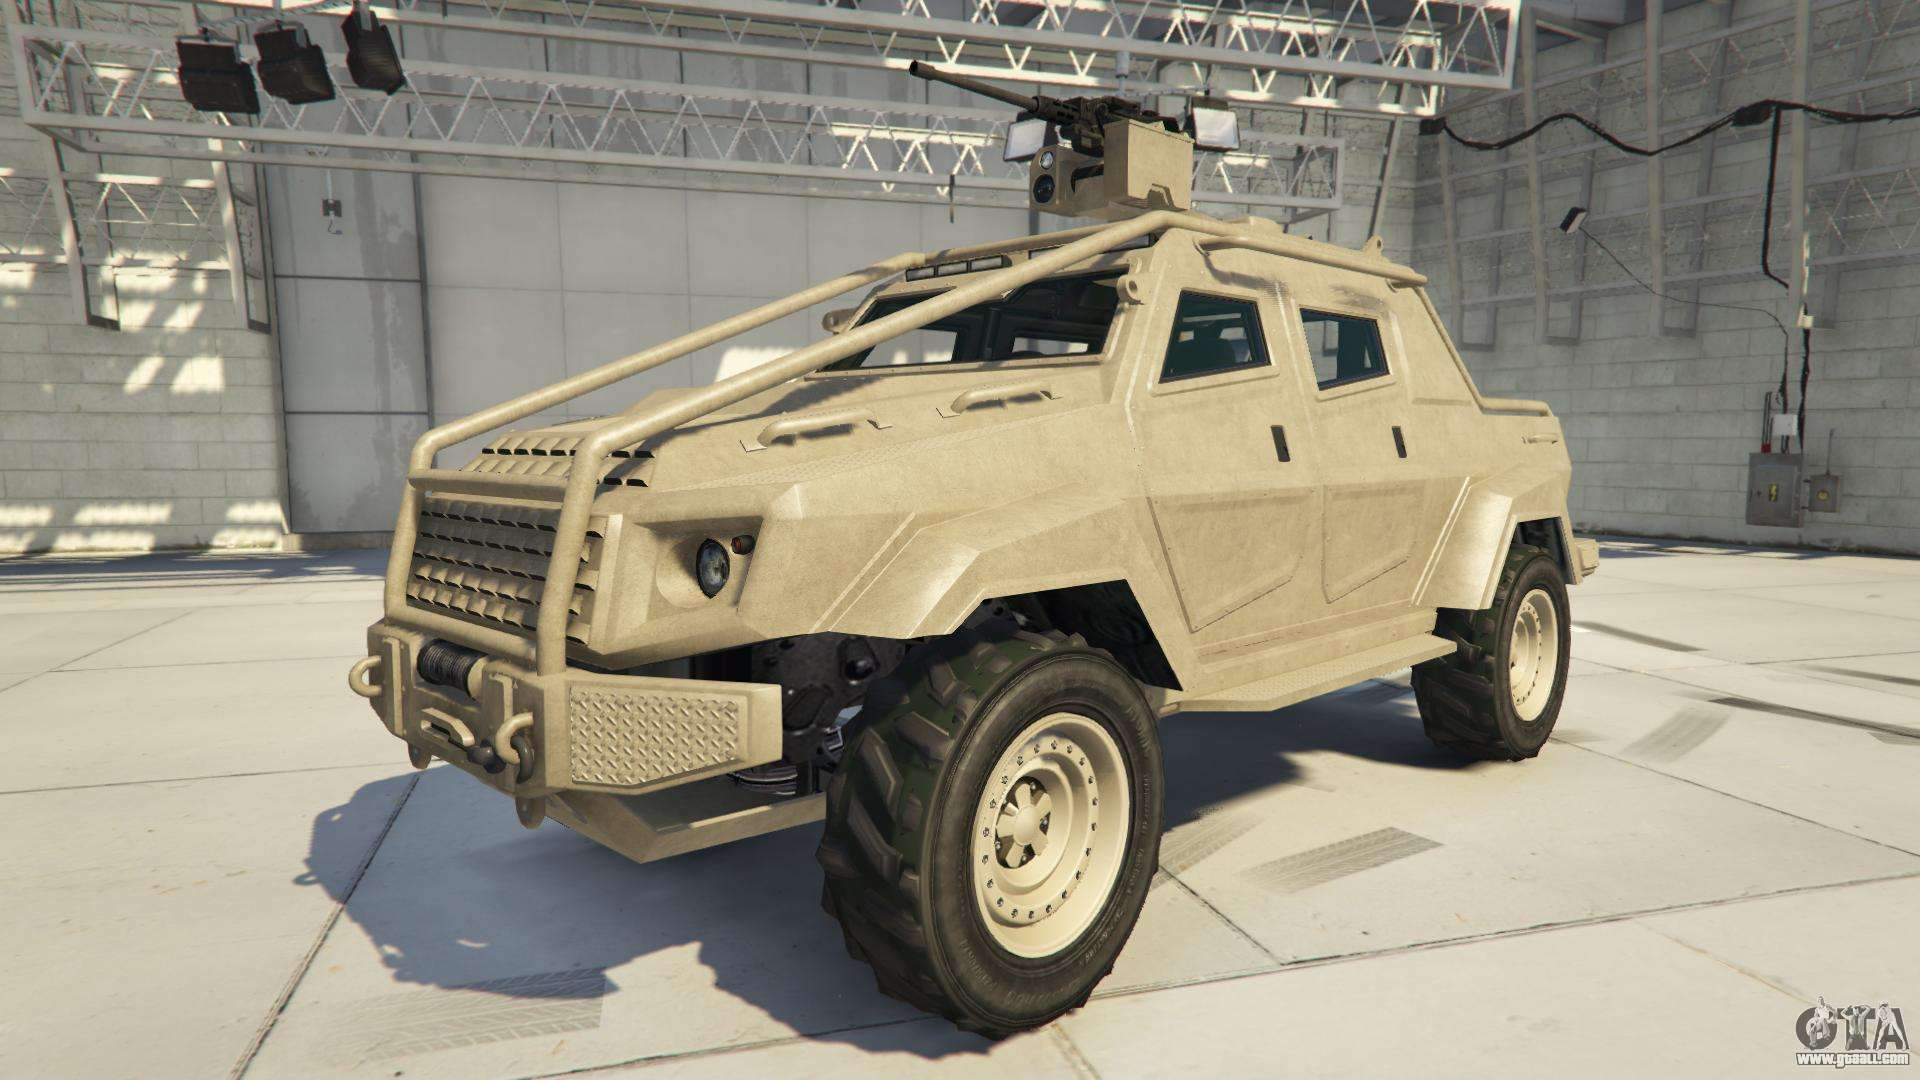 GTA 5 vehicles: all cars and motorcycles, planes and ...